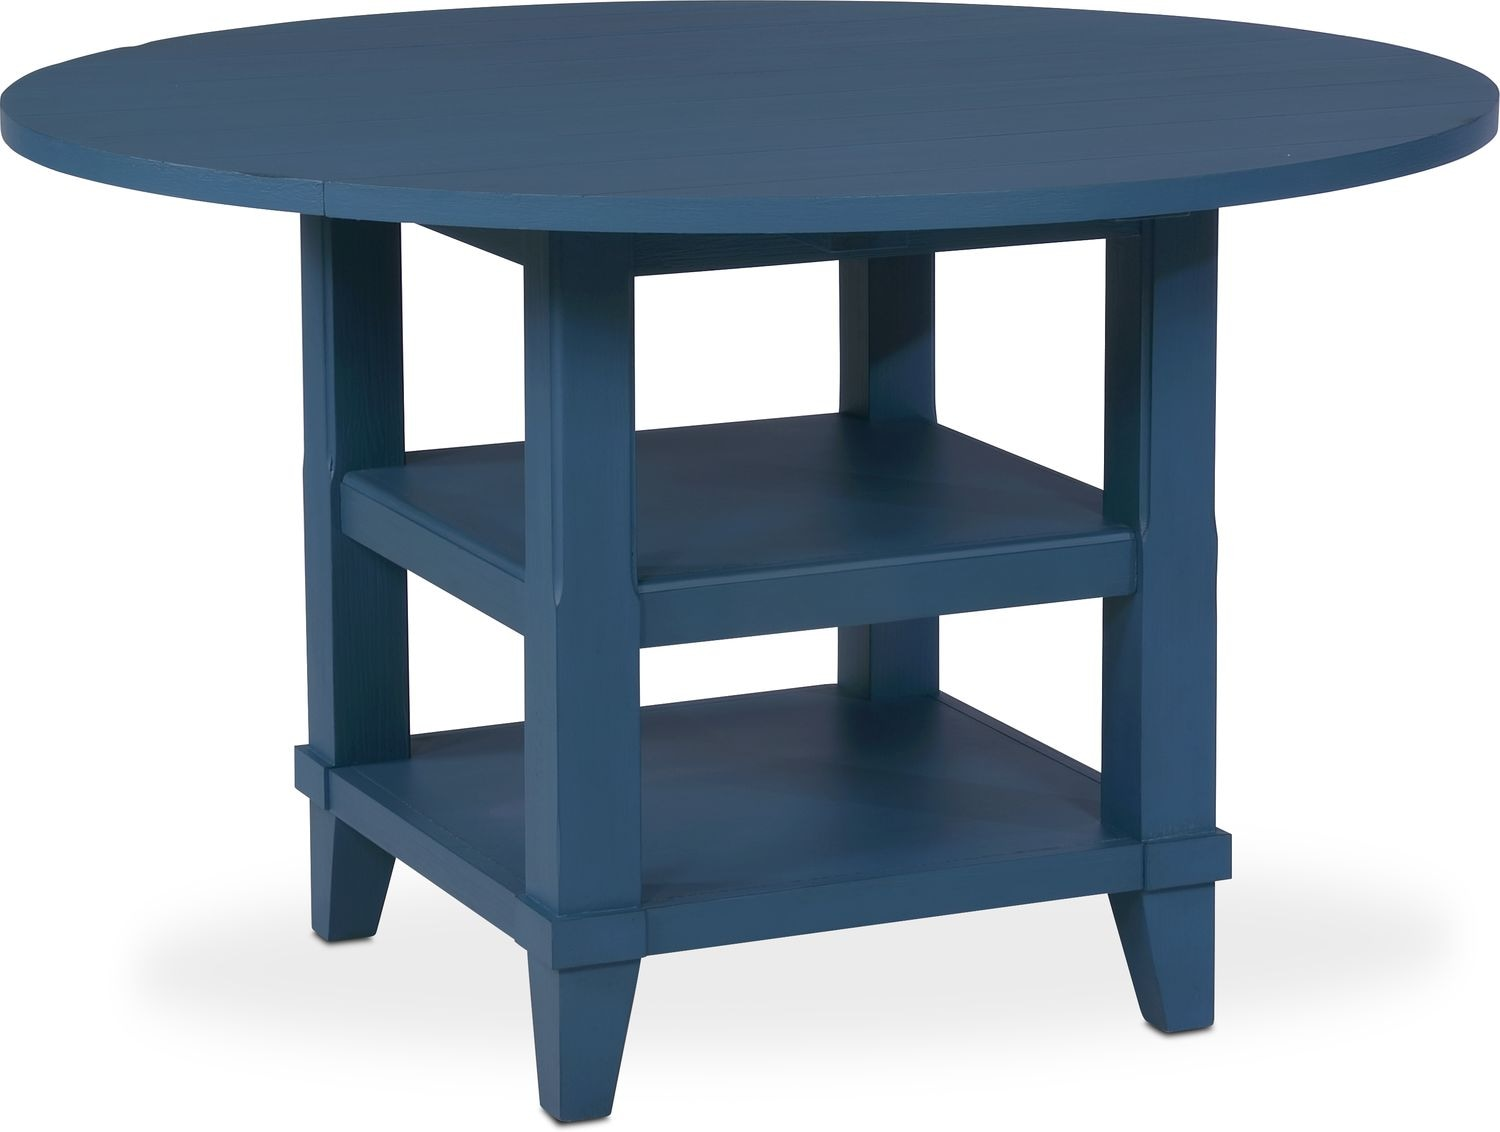 Dining Room Furniture   New Haven Round Drop Leaf Dining Table   Blue